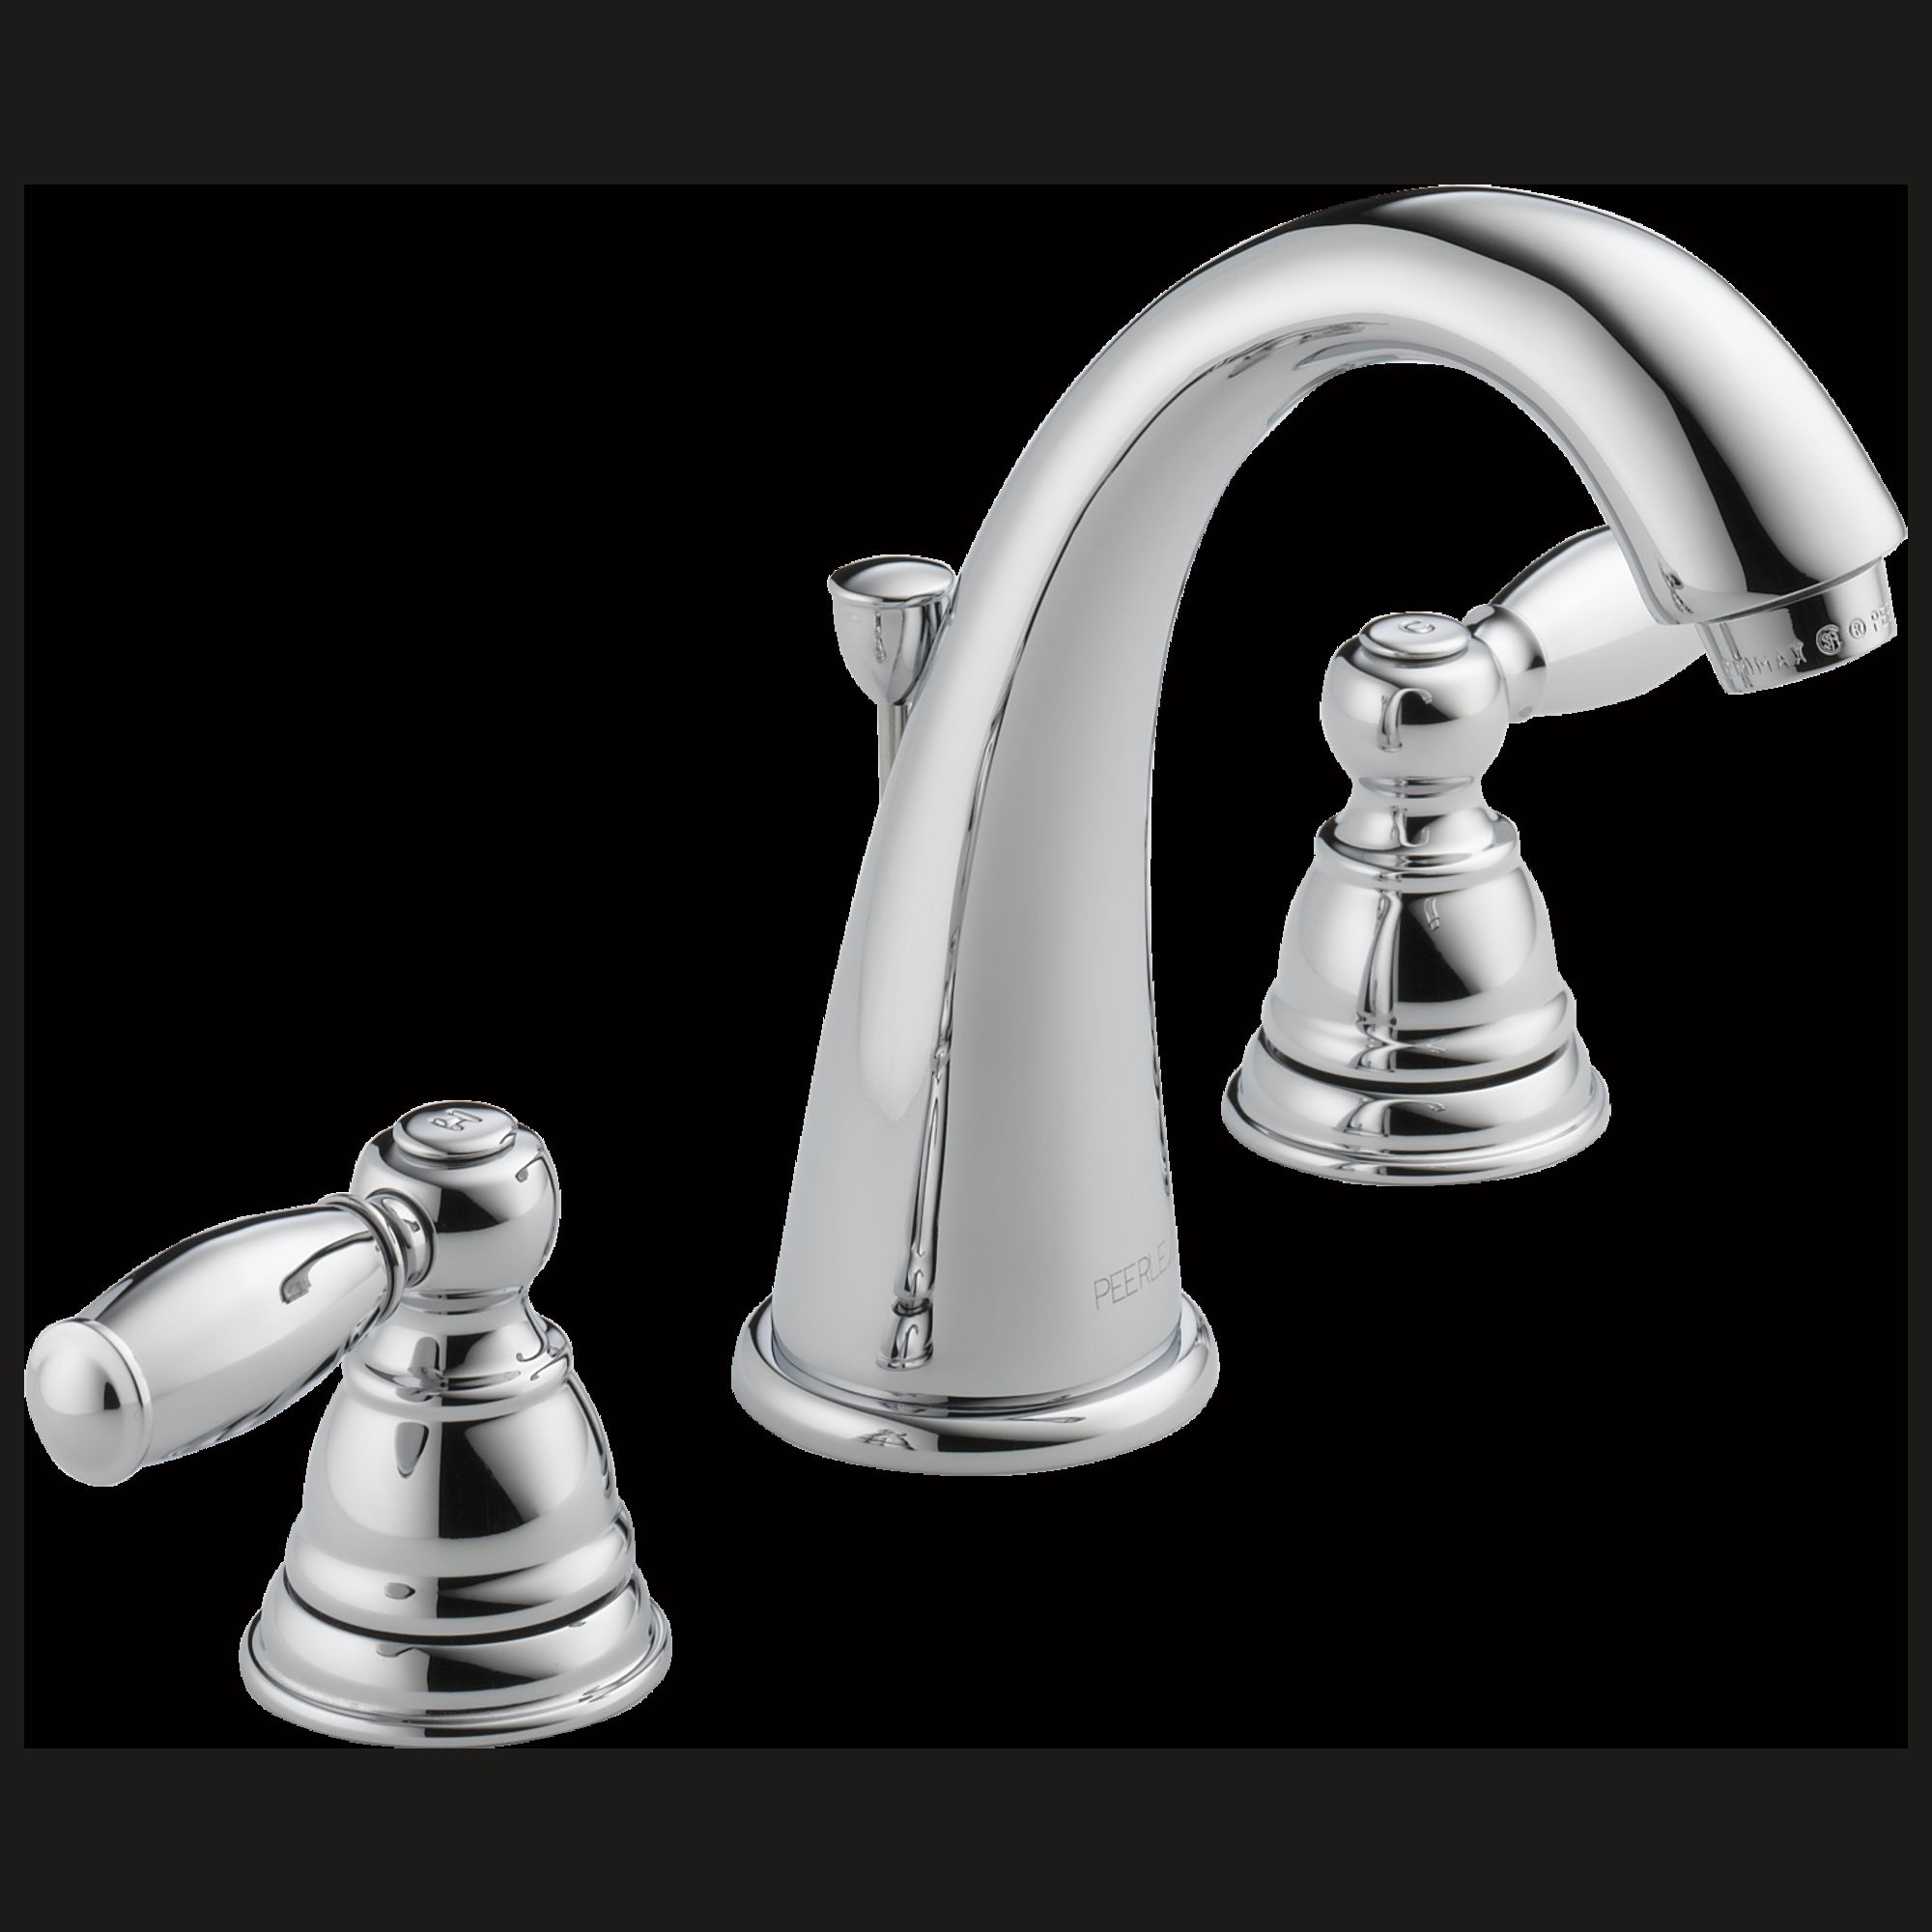 Peerless Bathroom Faucet Leaking | Bathroom Ideas | Pinterest | Faucet